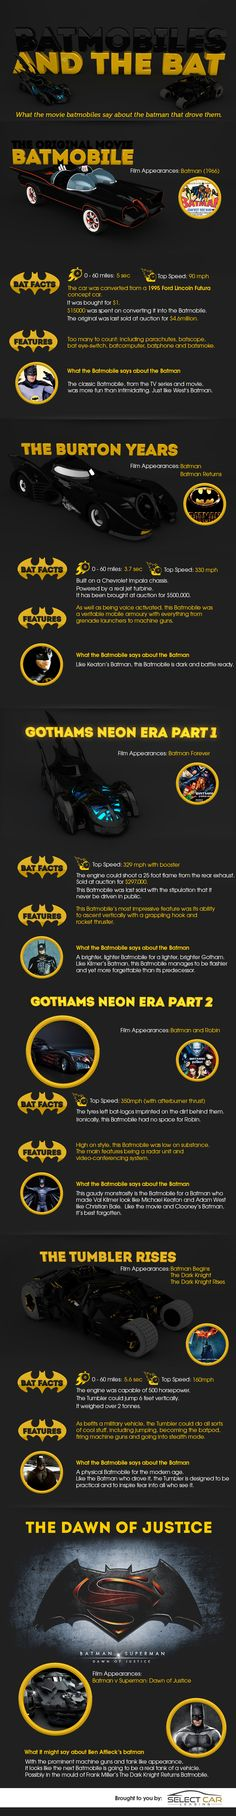 This infographic from Select Car Leasing gives you all of the information you could want about the Batmobiles used in the films and tells you what each Batmobile has said about the Batman that drove them. From the kitch Adam West and his shark repellent bat-spray to gravelly voiced Christian Bale and the uber powerful Tumbler.